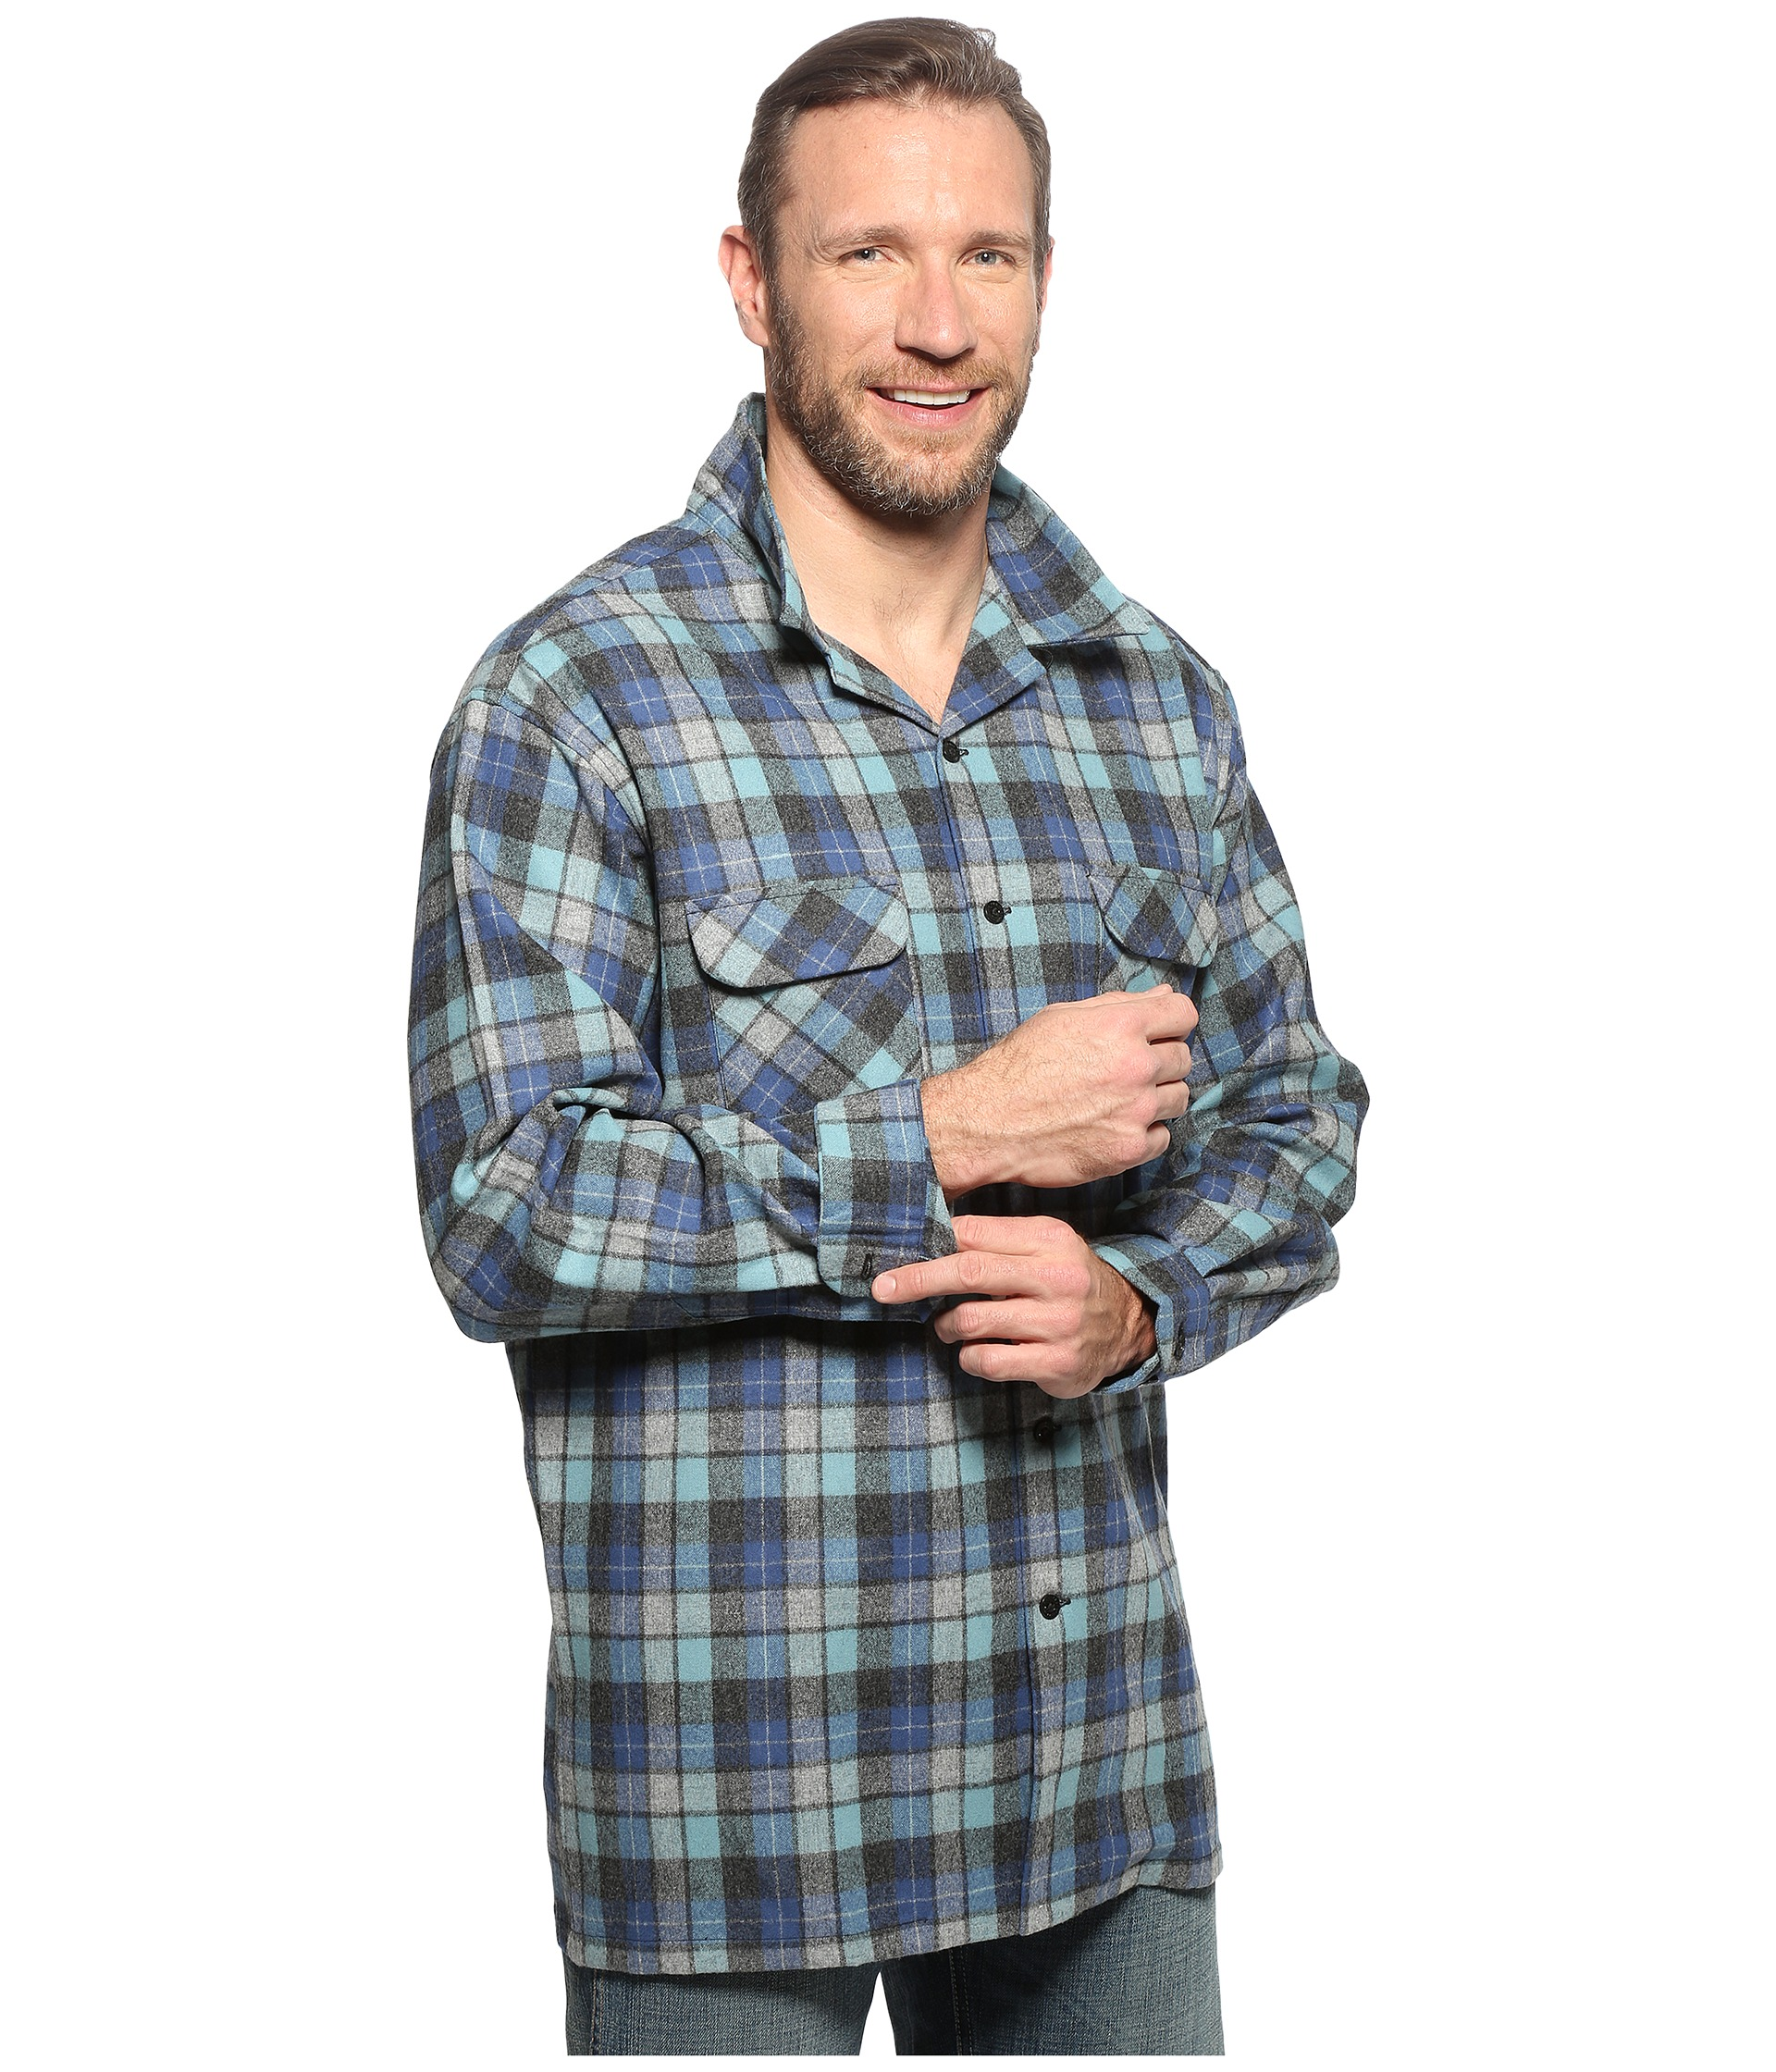 Men's Pendleton Apparel - Sheplers24/7 Customer Service· Free Shipping· Trusted Since · Shop Our Huge Selection8,+ followers on Twitter.